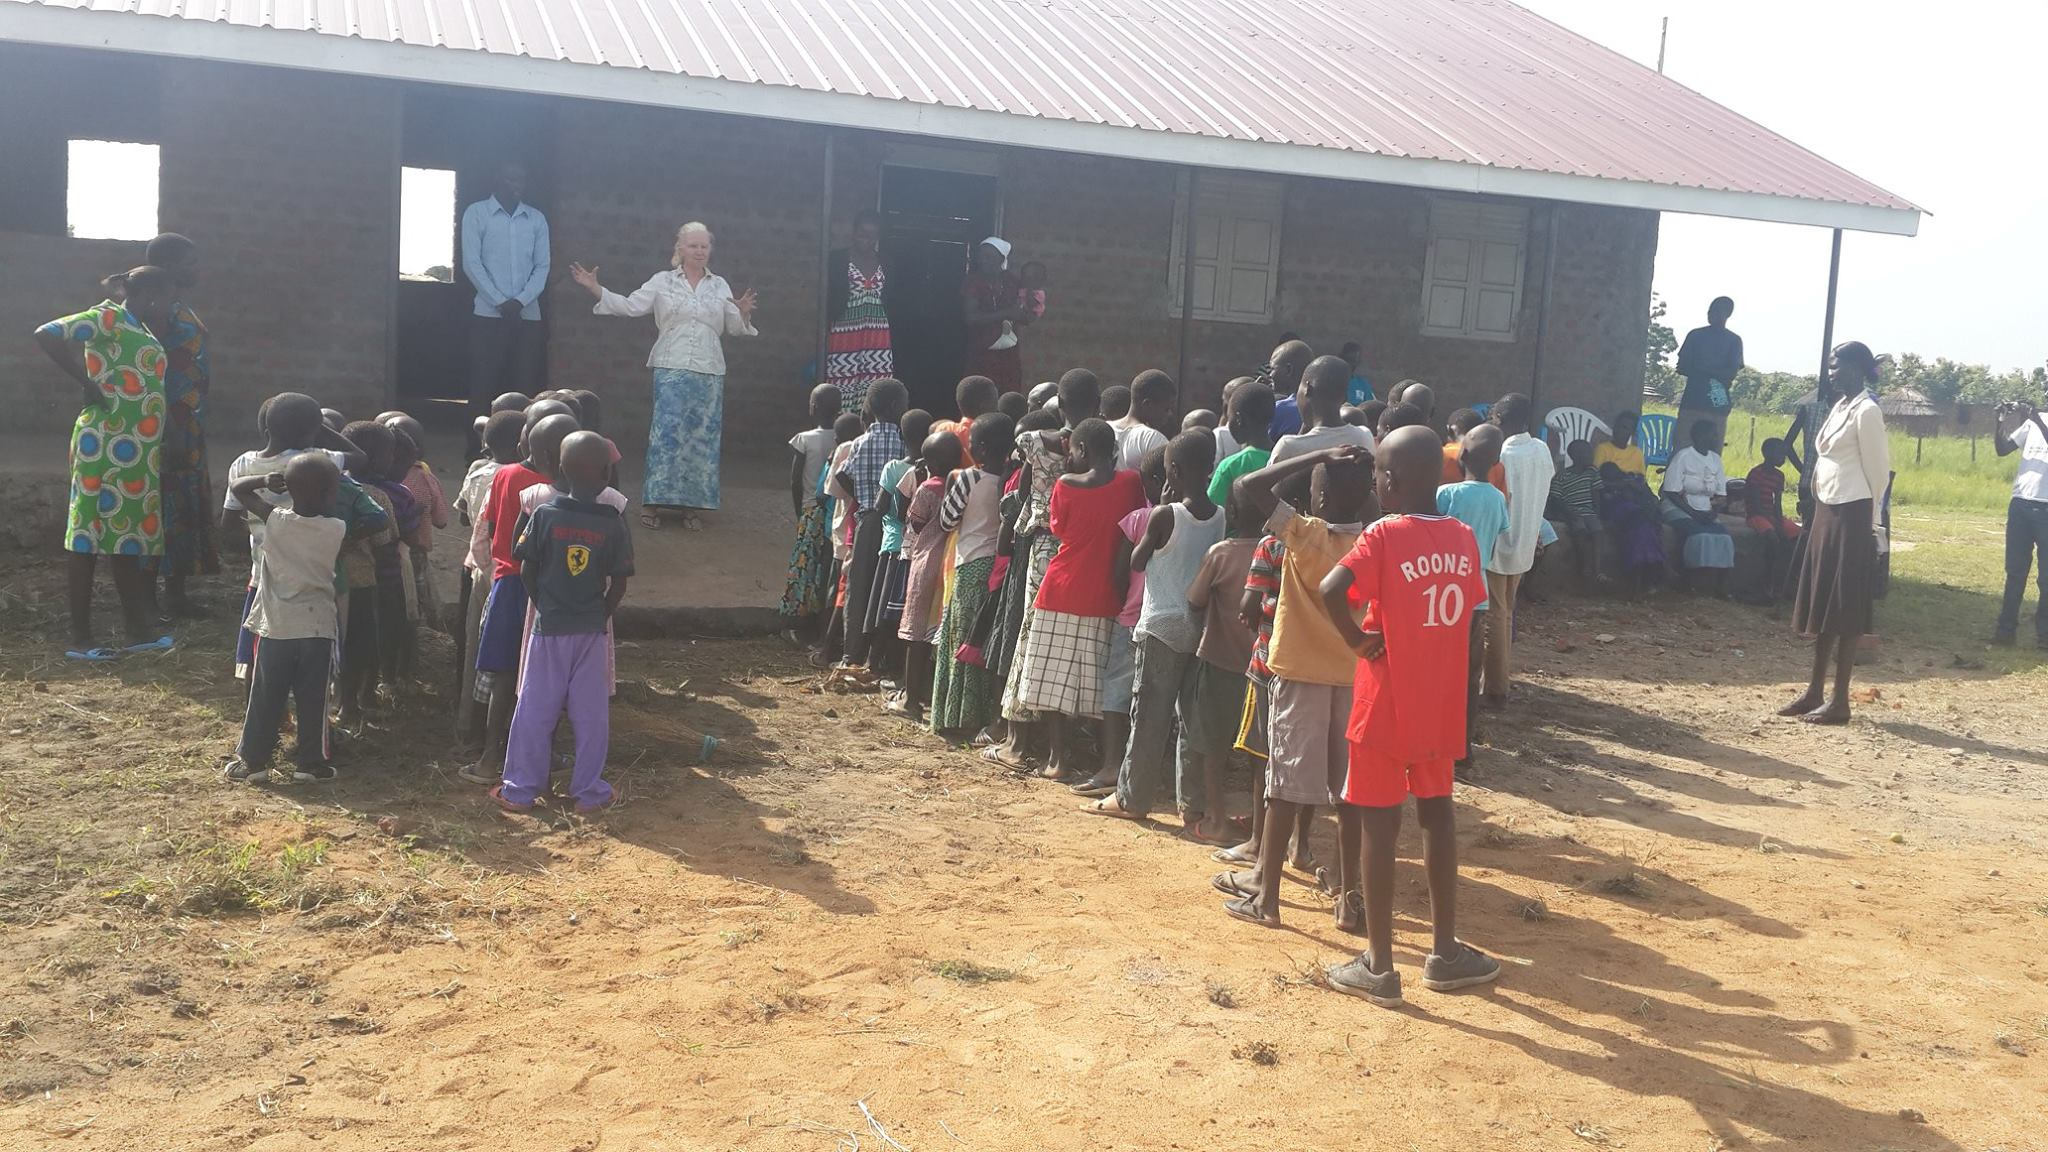 Assembly at the new school block